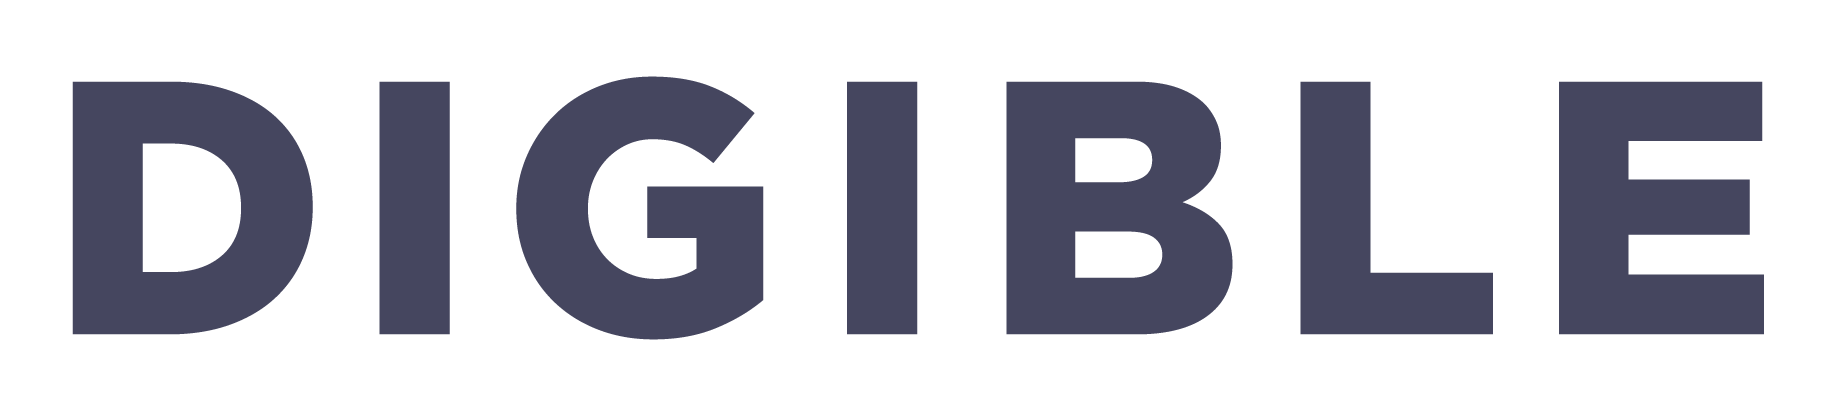 Digible logo